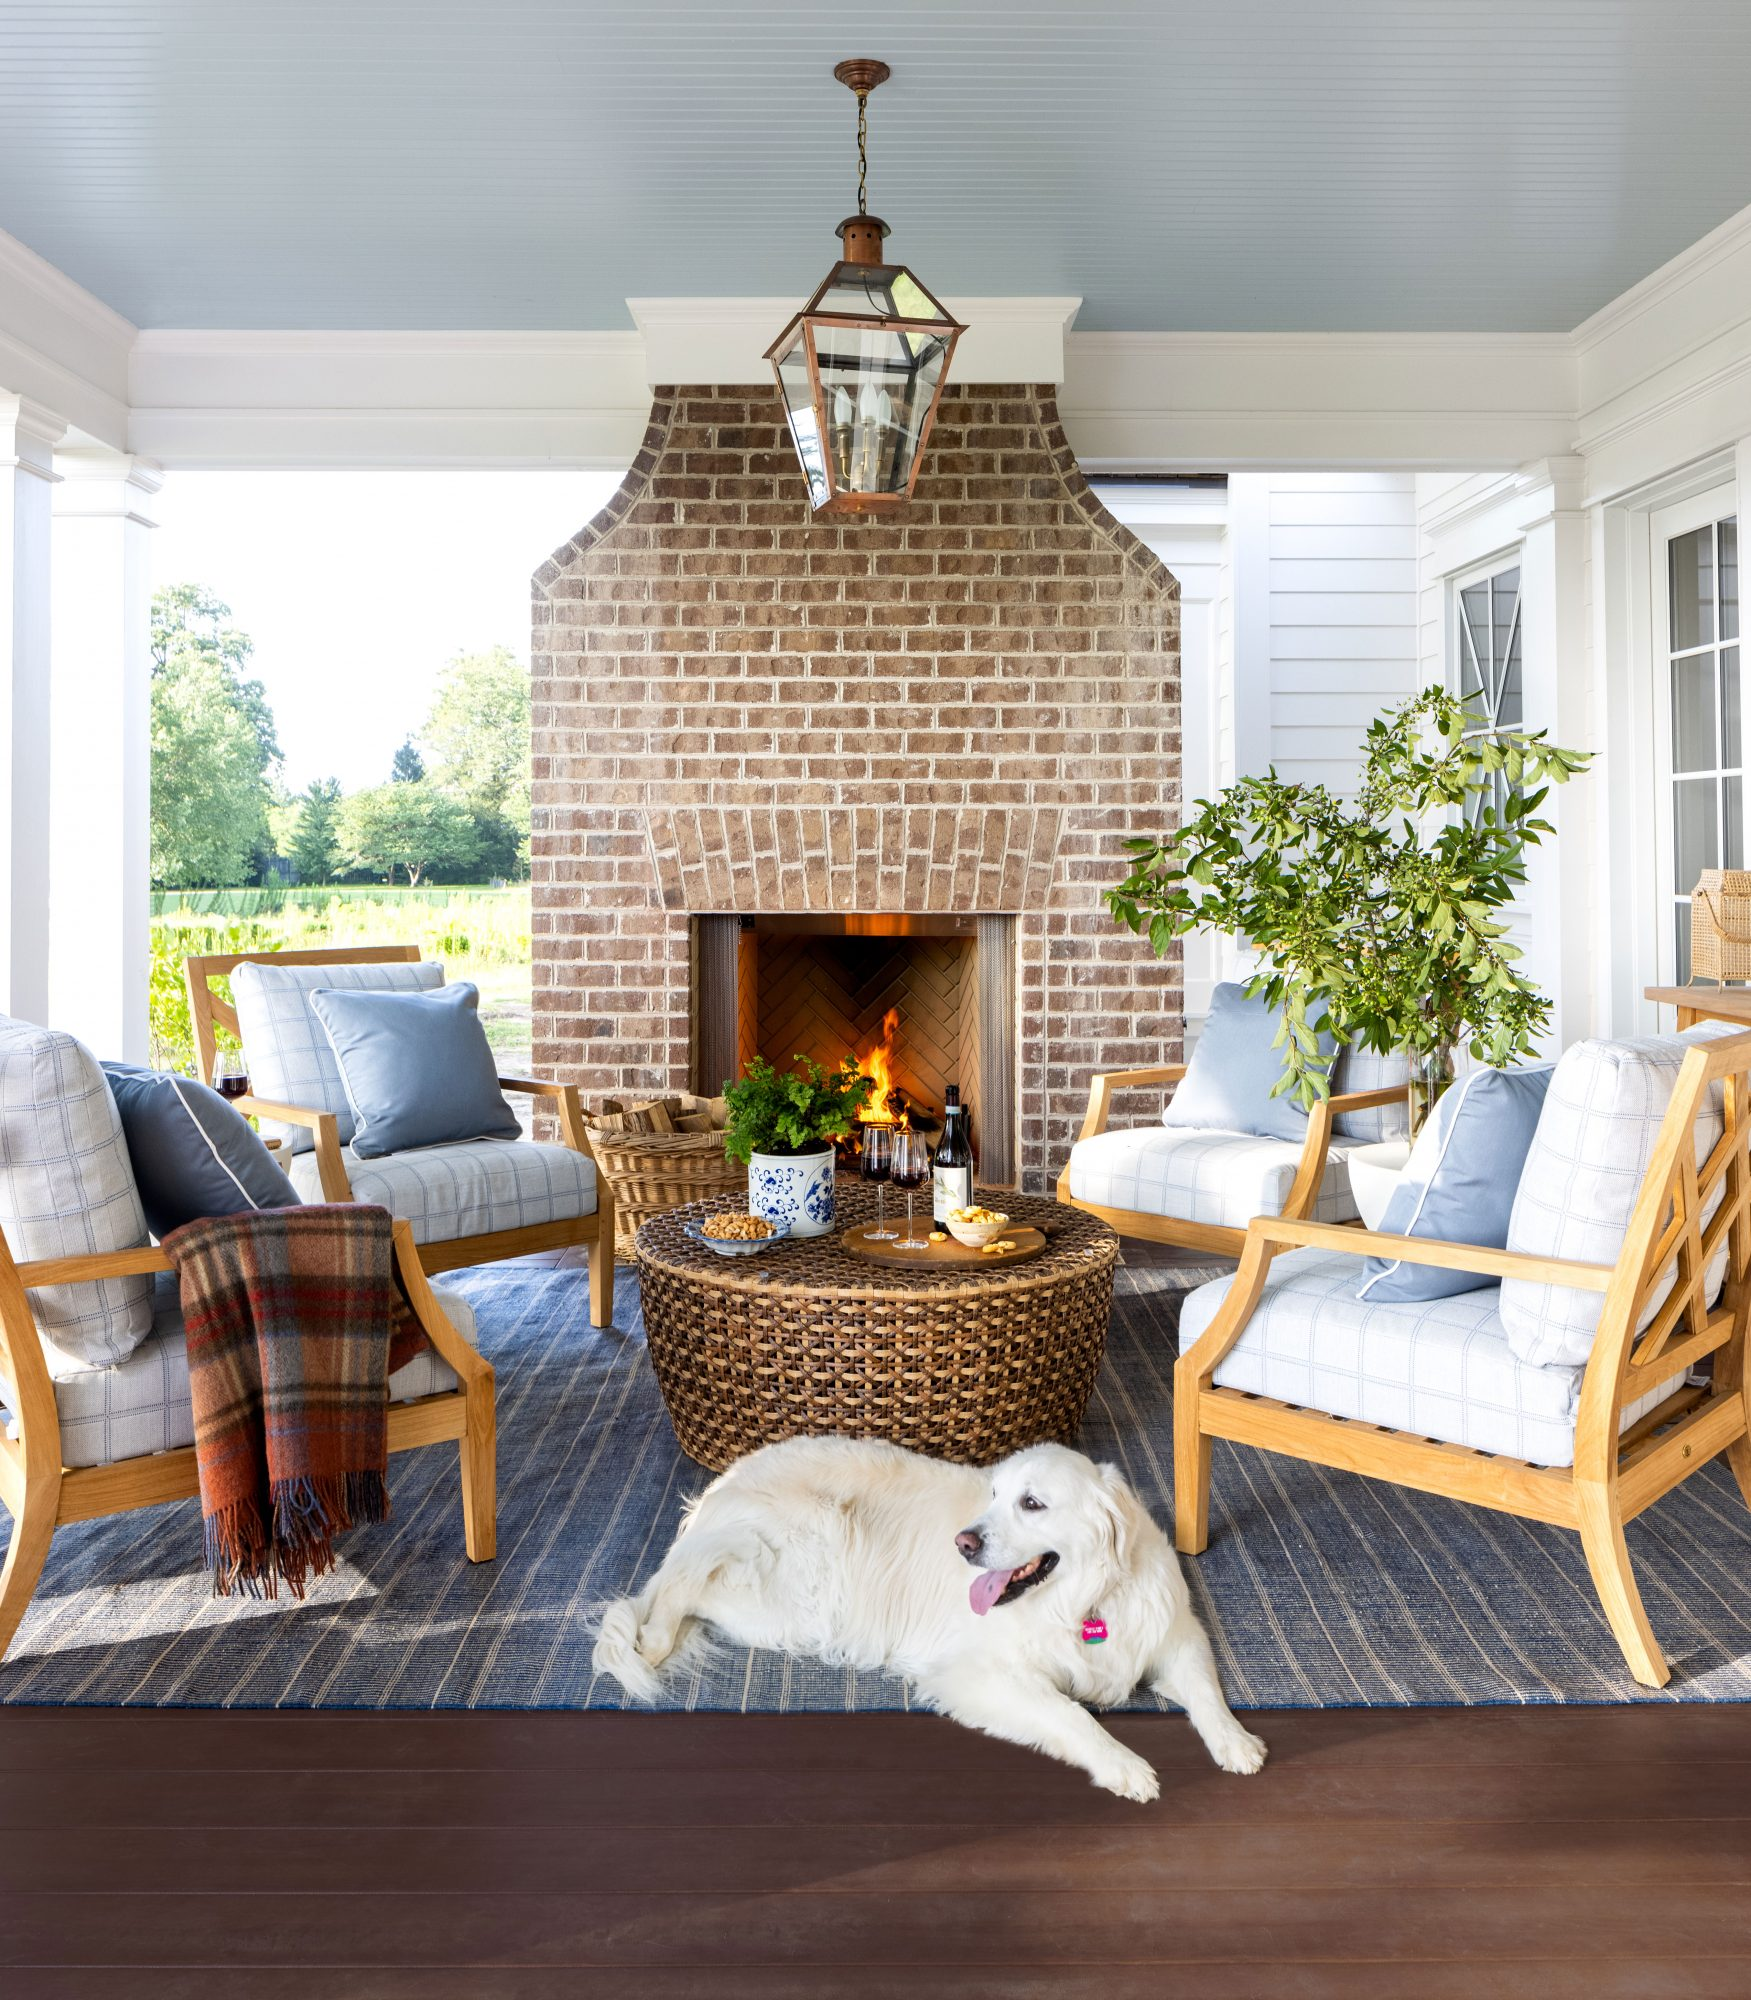 2021 Idea House Porch Fireplace Seating Area